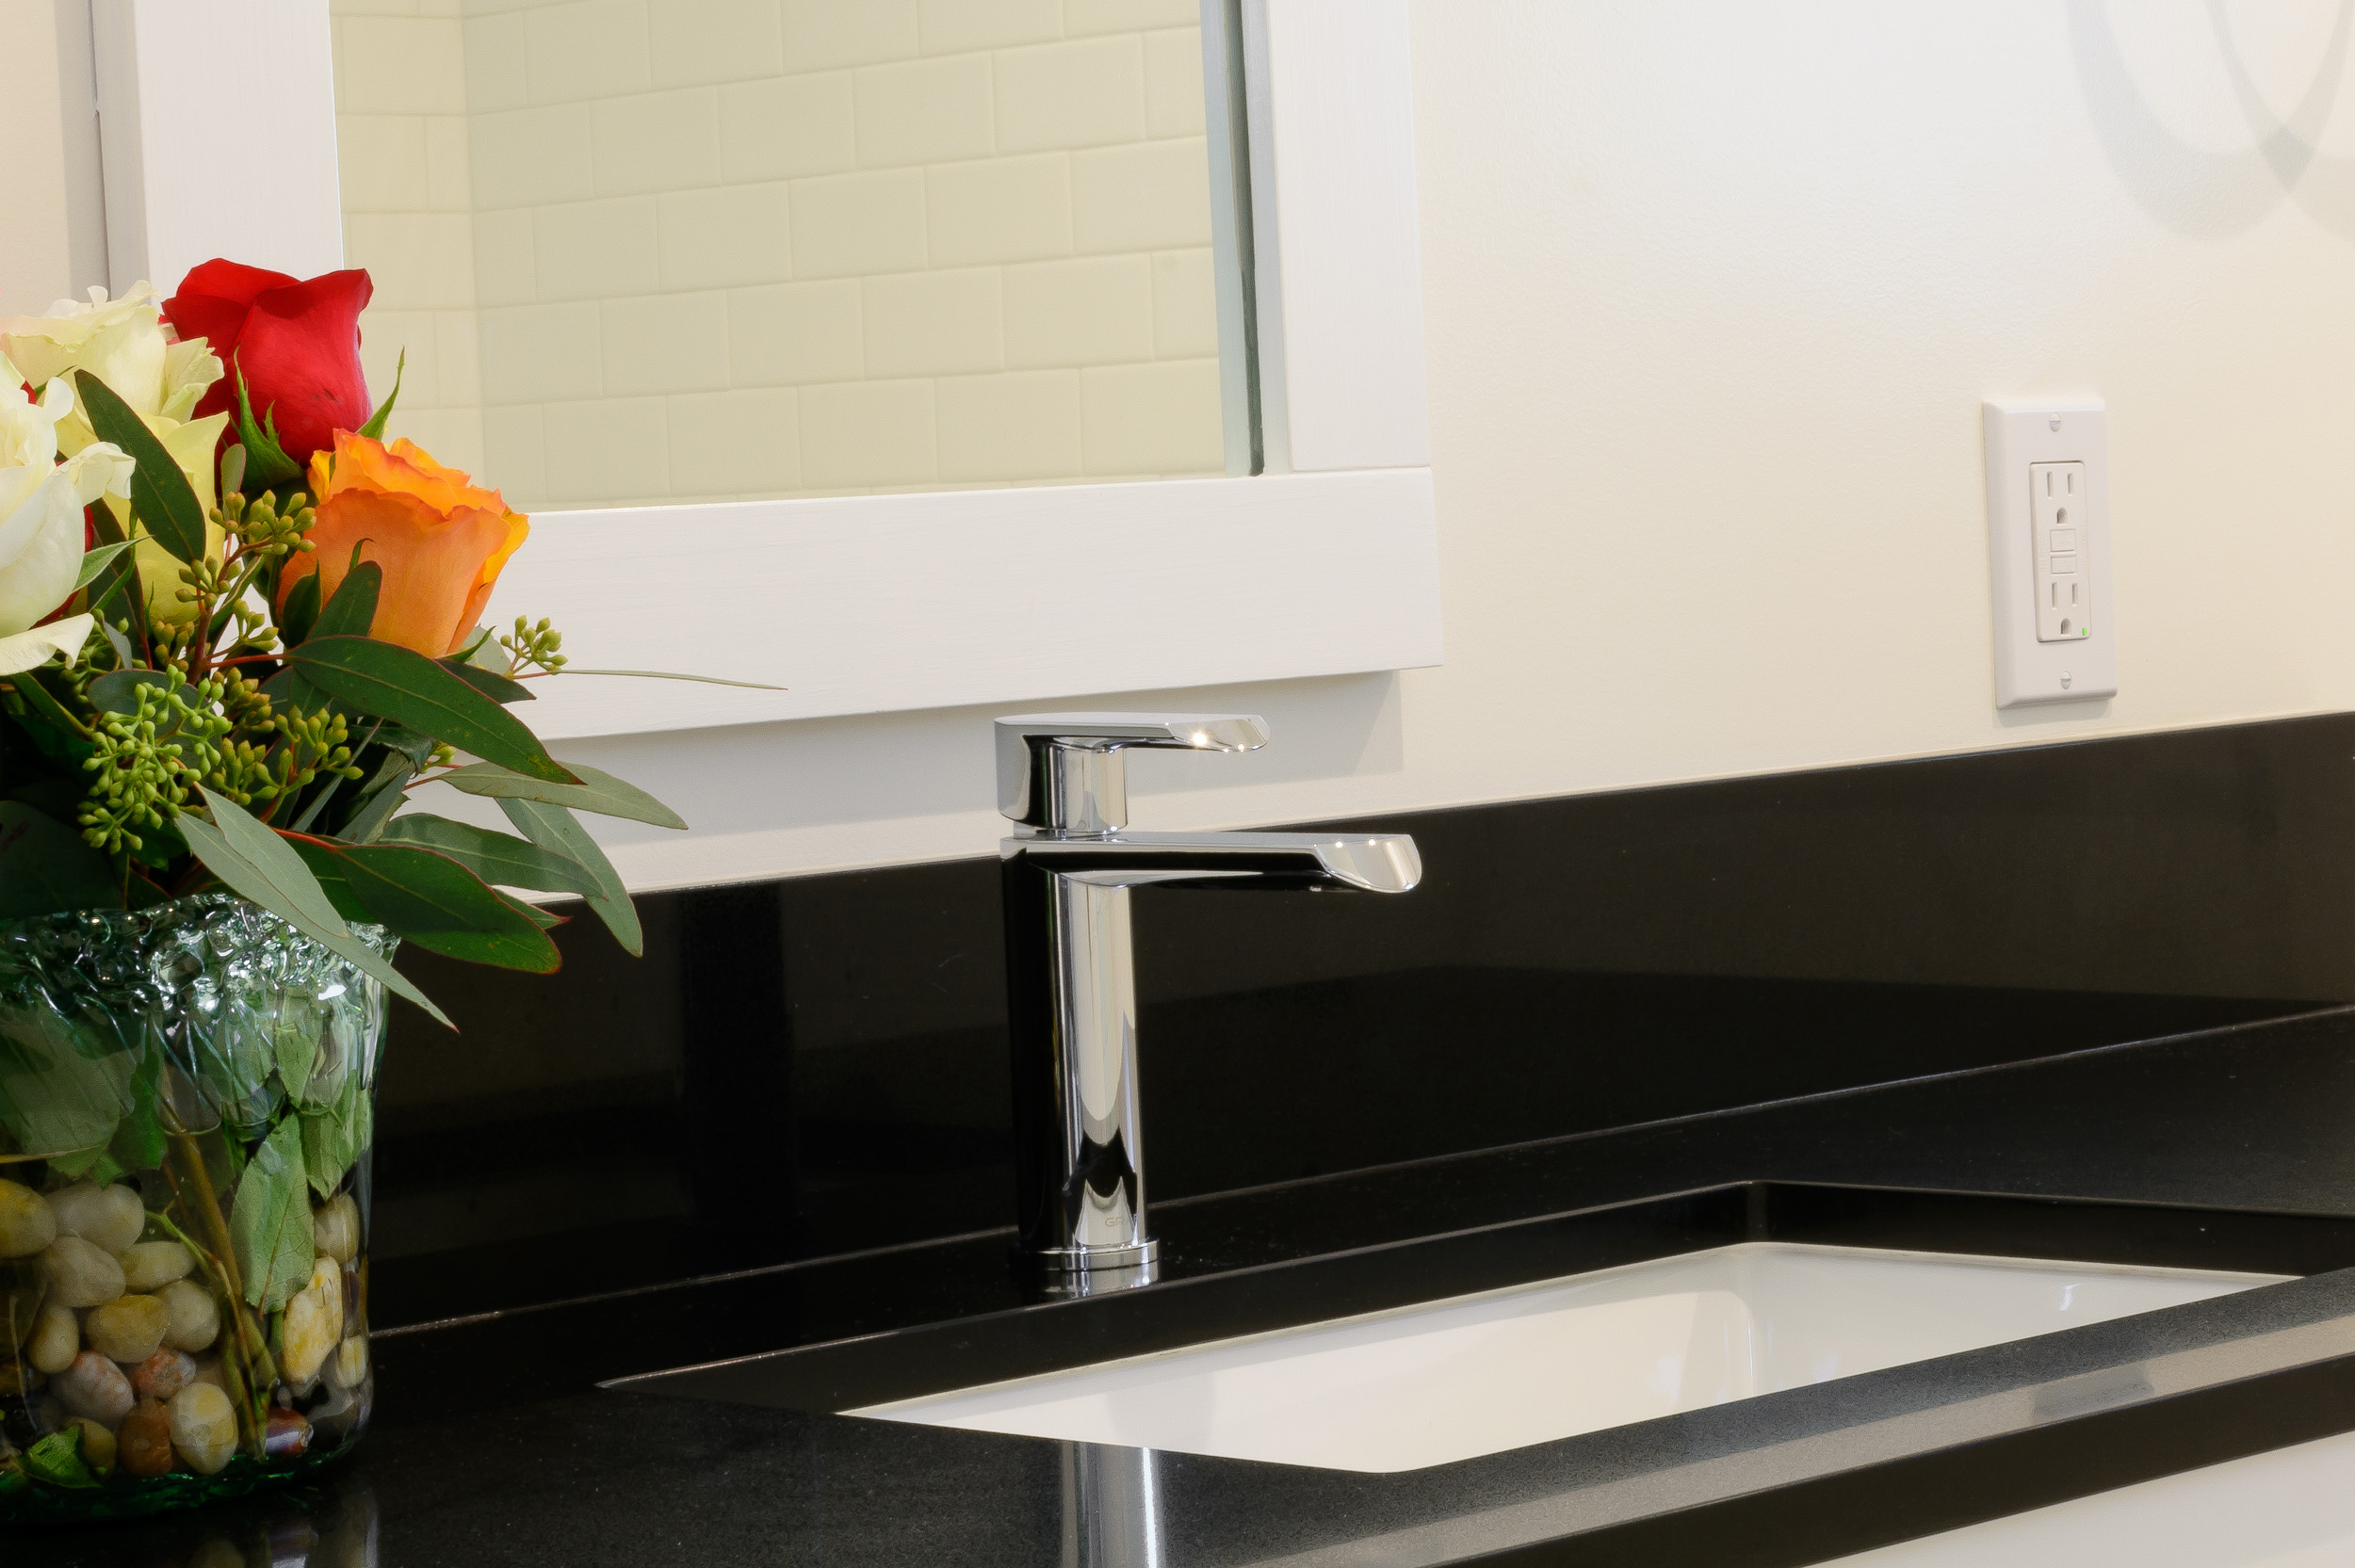 Modern sink faucet mounted on an absolute black granite vanity top and below a white framed mirror